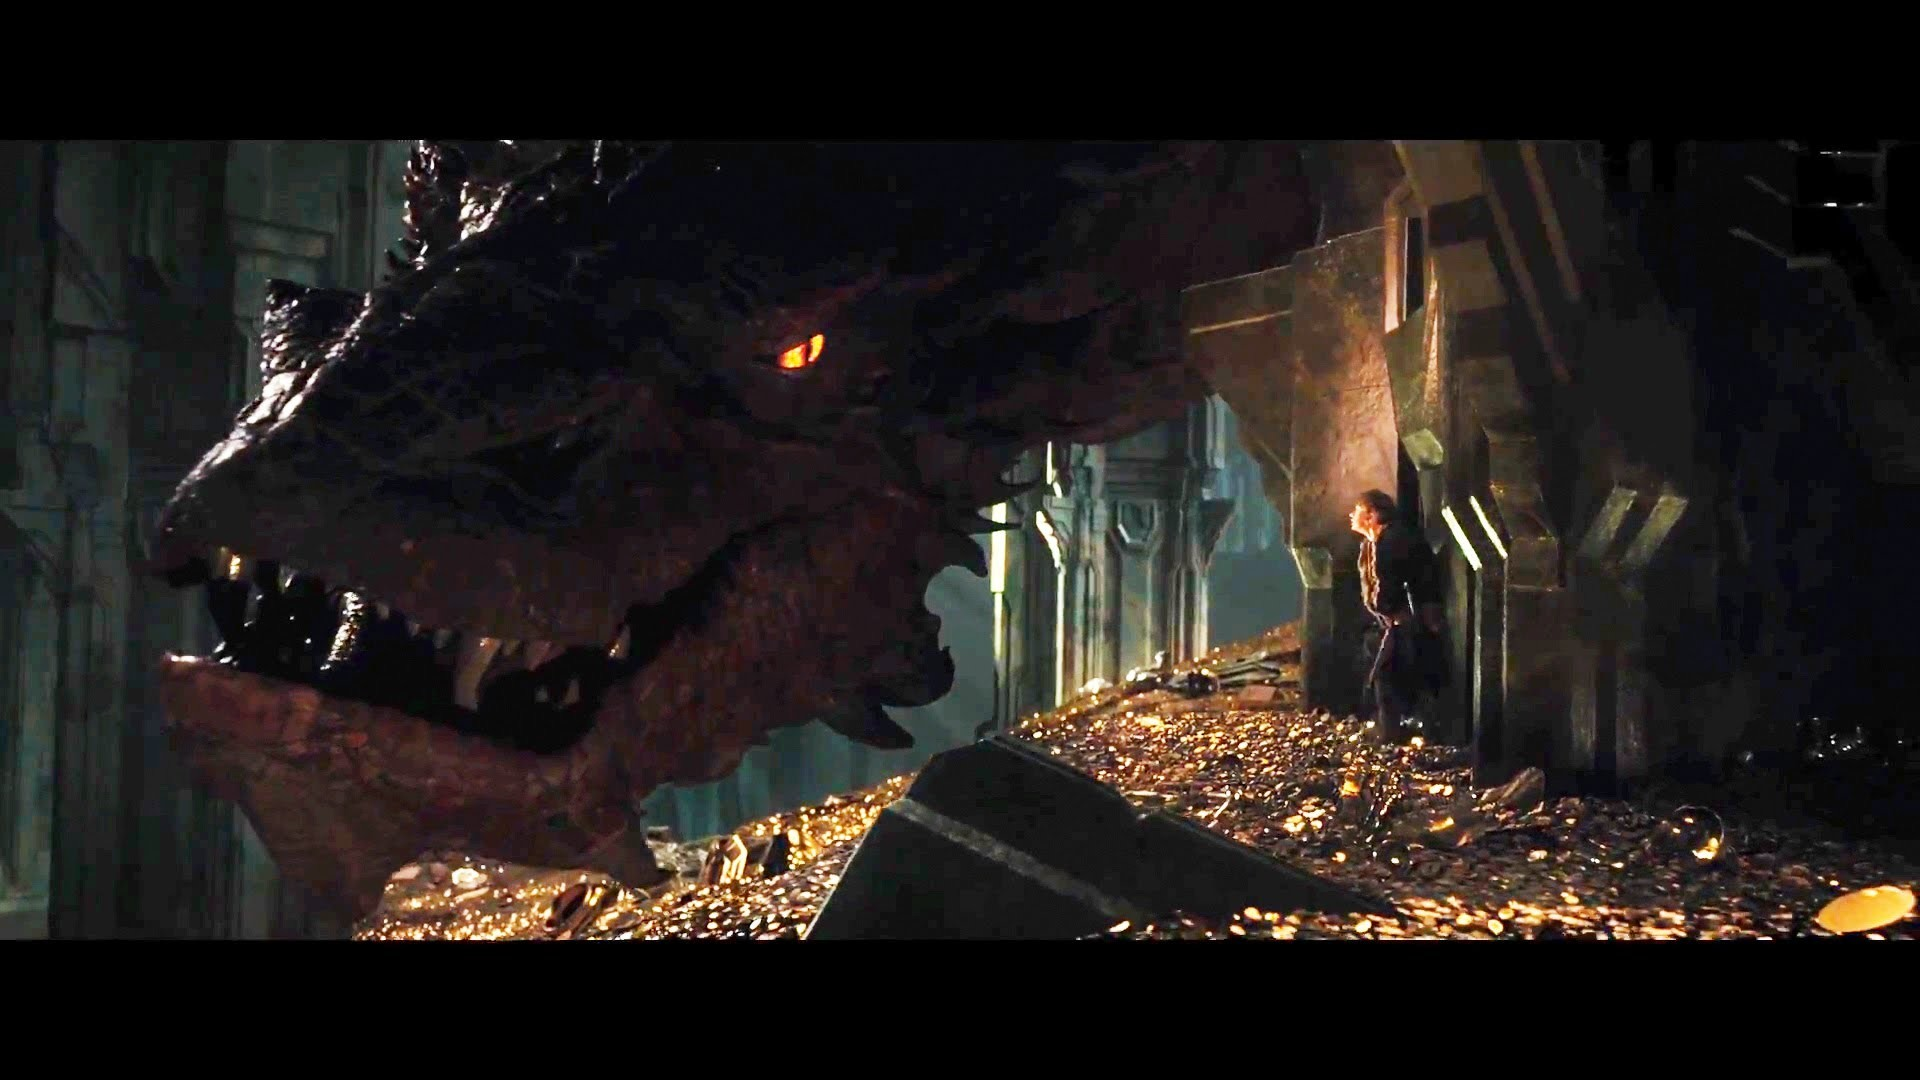 The Hobbit: The Desolation of Smaug (2013) Official Trailer [HD] – YouTube